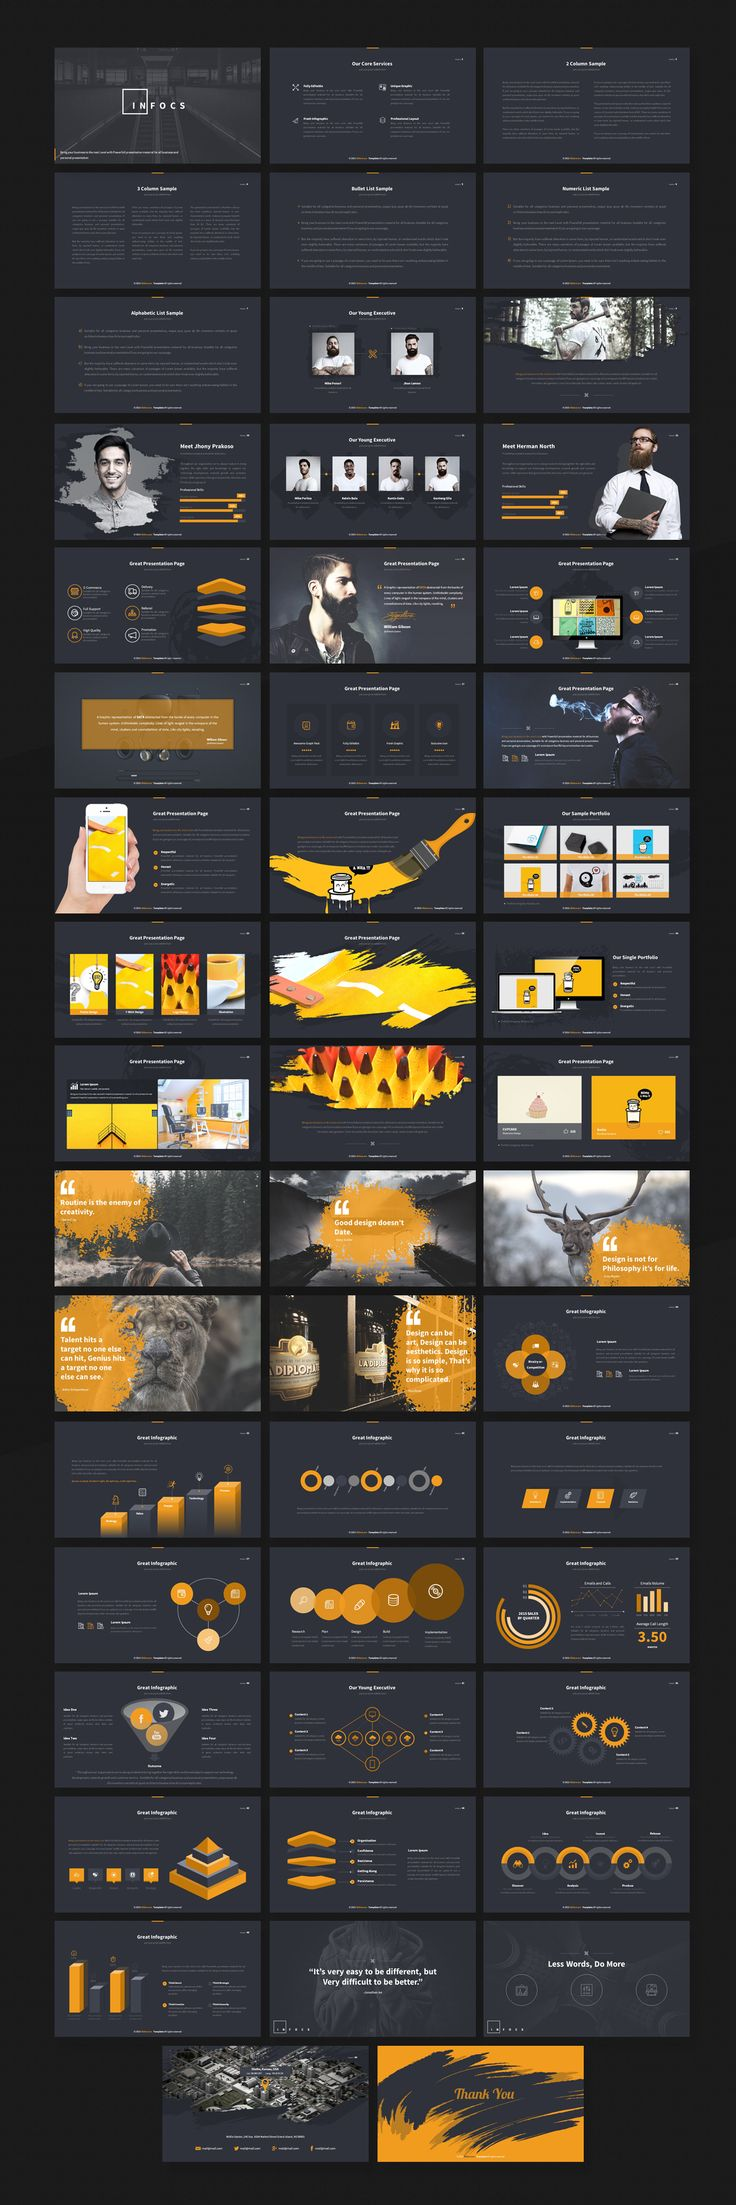 Infocs - Multipurpose Presentation by SlideMore on @creativemarket